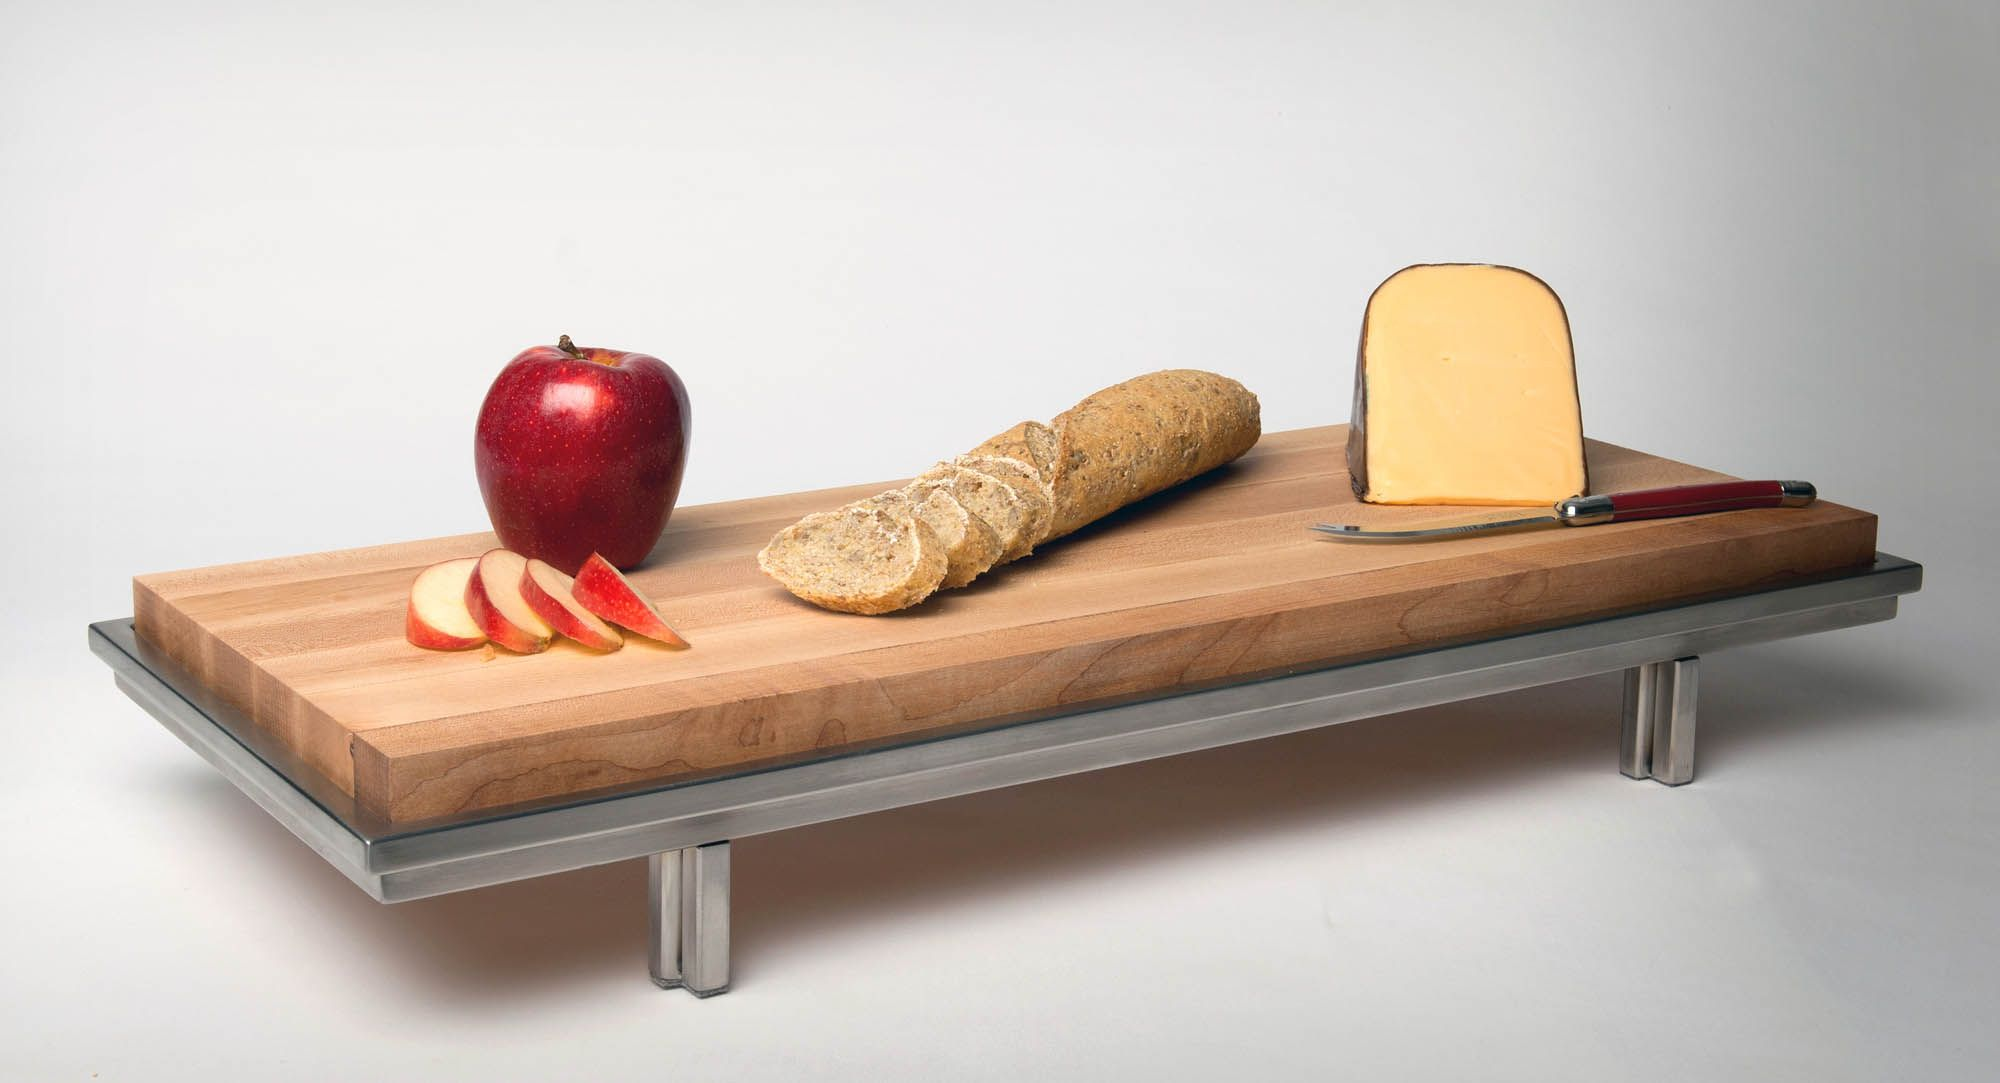 We provide the frames and you drop in a surface of your own choosing that best complements your kitchen aesthetic. We also offer maple cutting board inserts manufactured by the Michigan Maple Block Company for our trays.